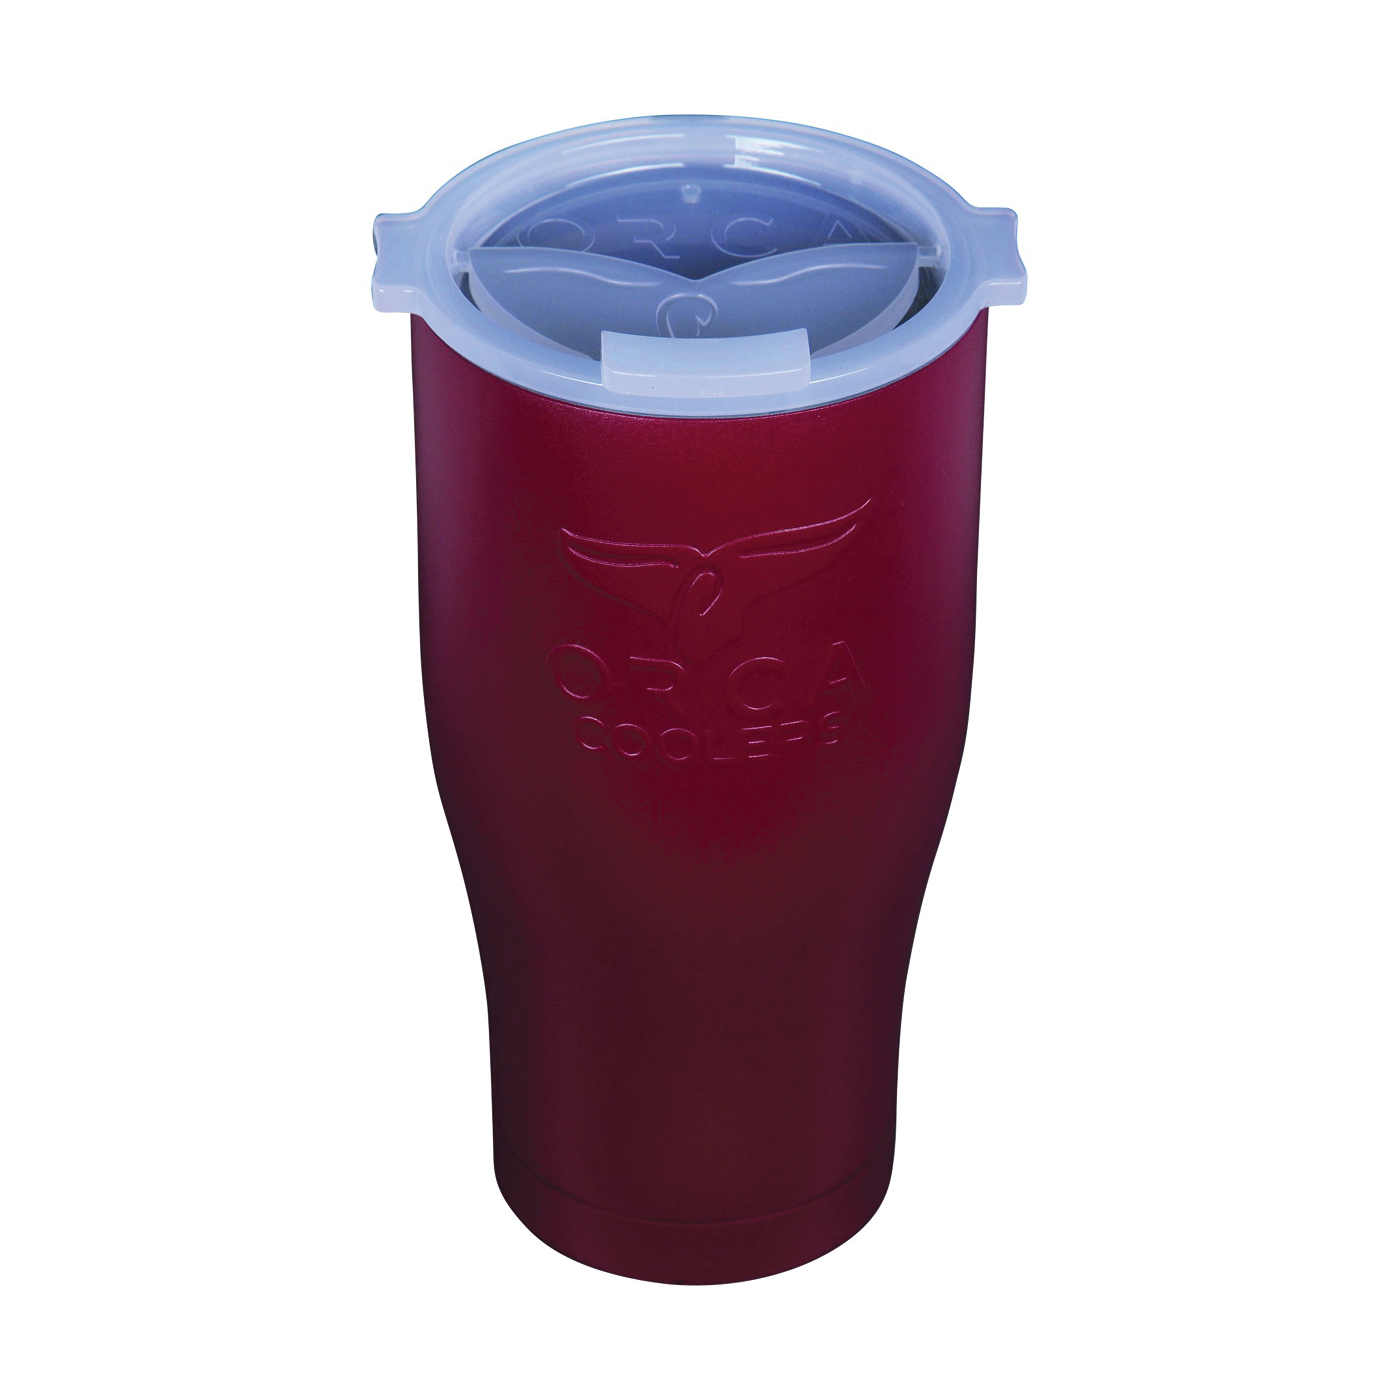 Picture of ORCA ORCCHA27DM/WH Chaser Tumbler, 27 oz Capacity, Stainless Steel, Dark Maroon